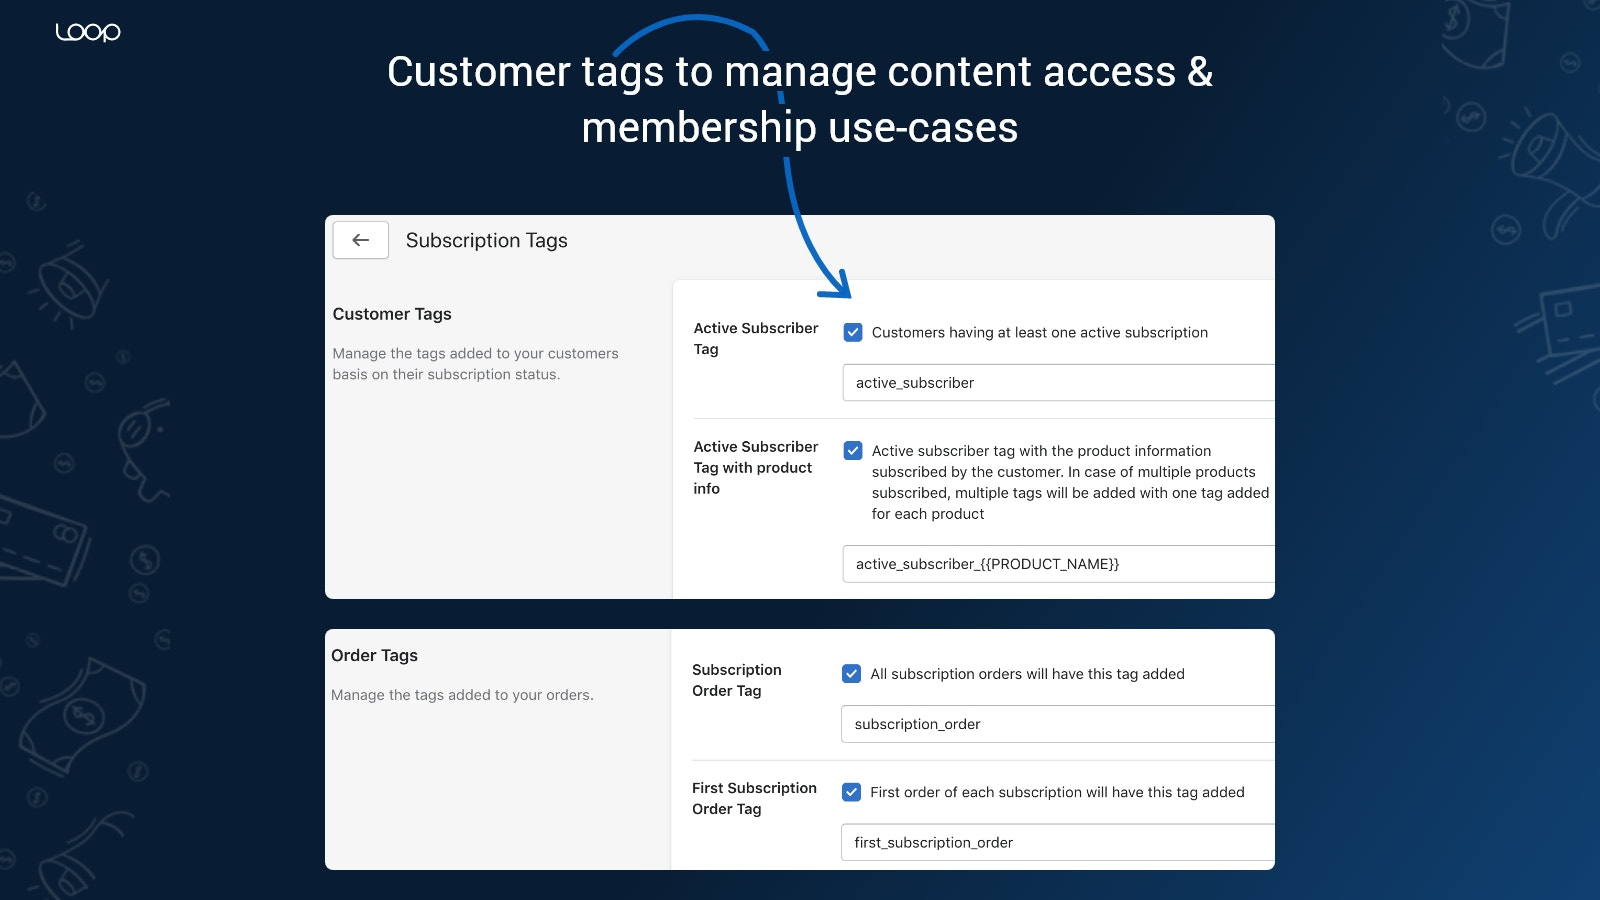 Dynamic Order tags for Subscription Orders